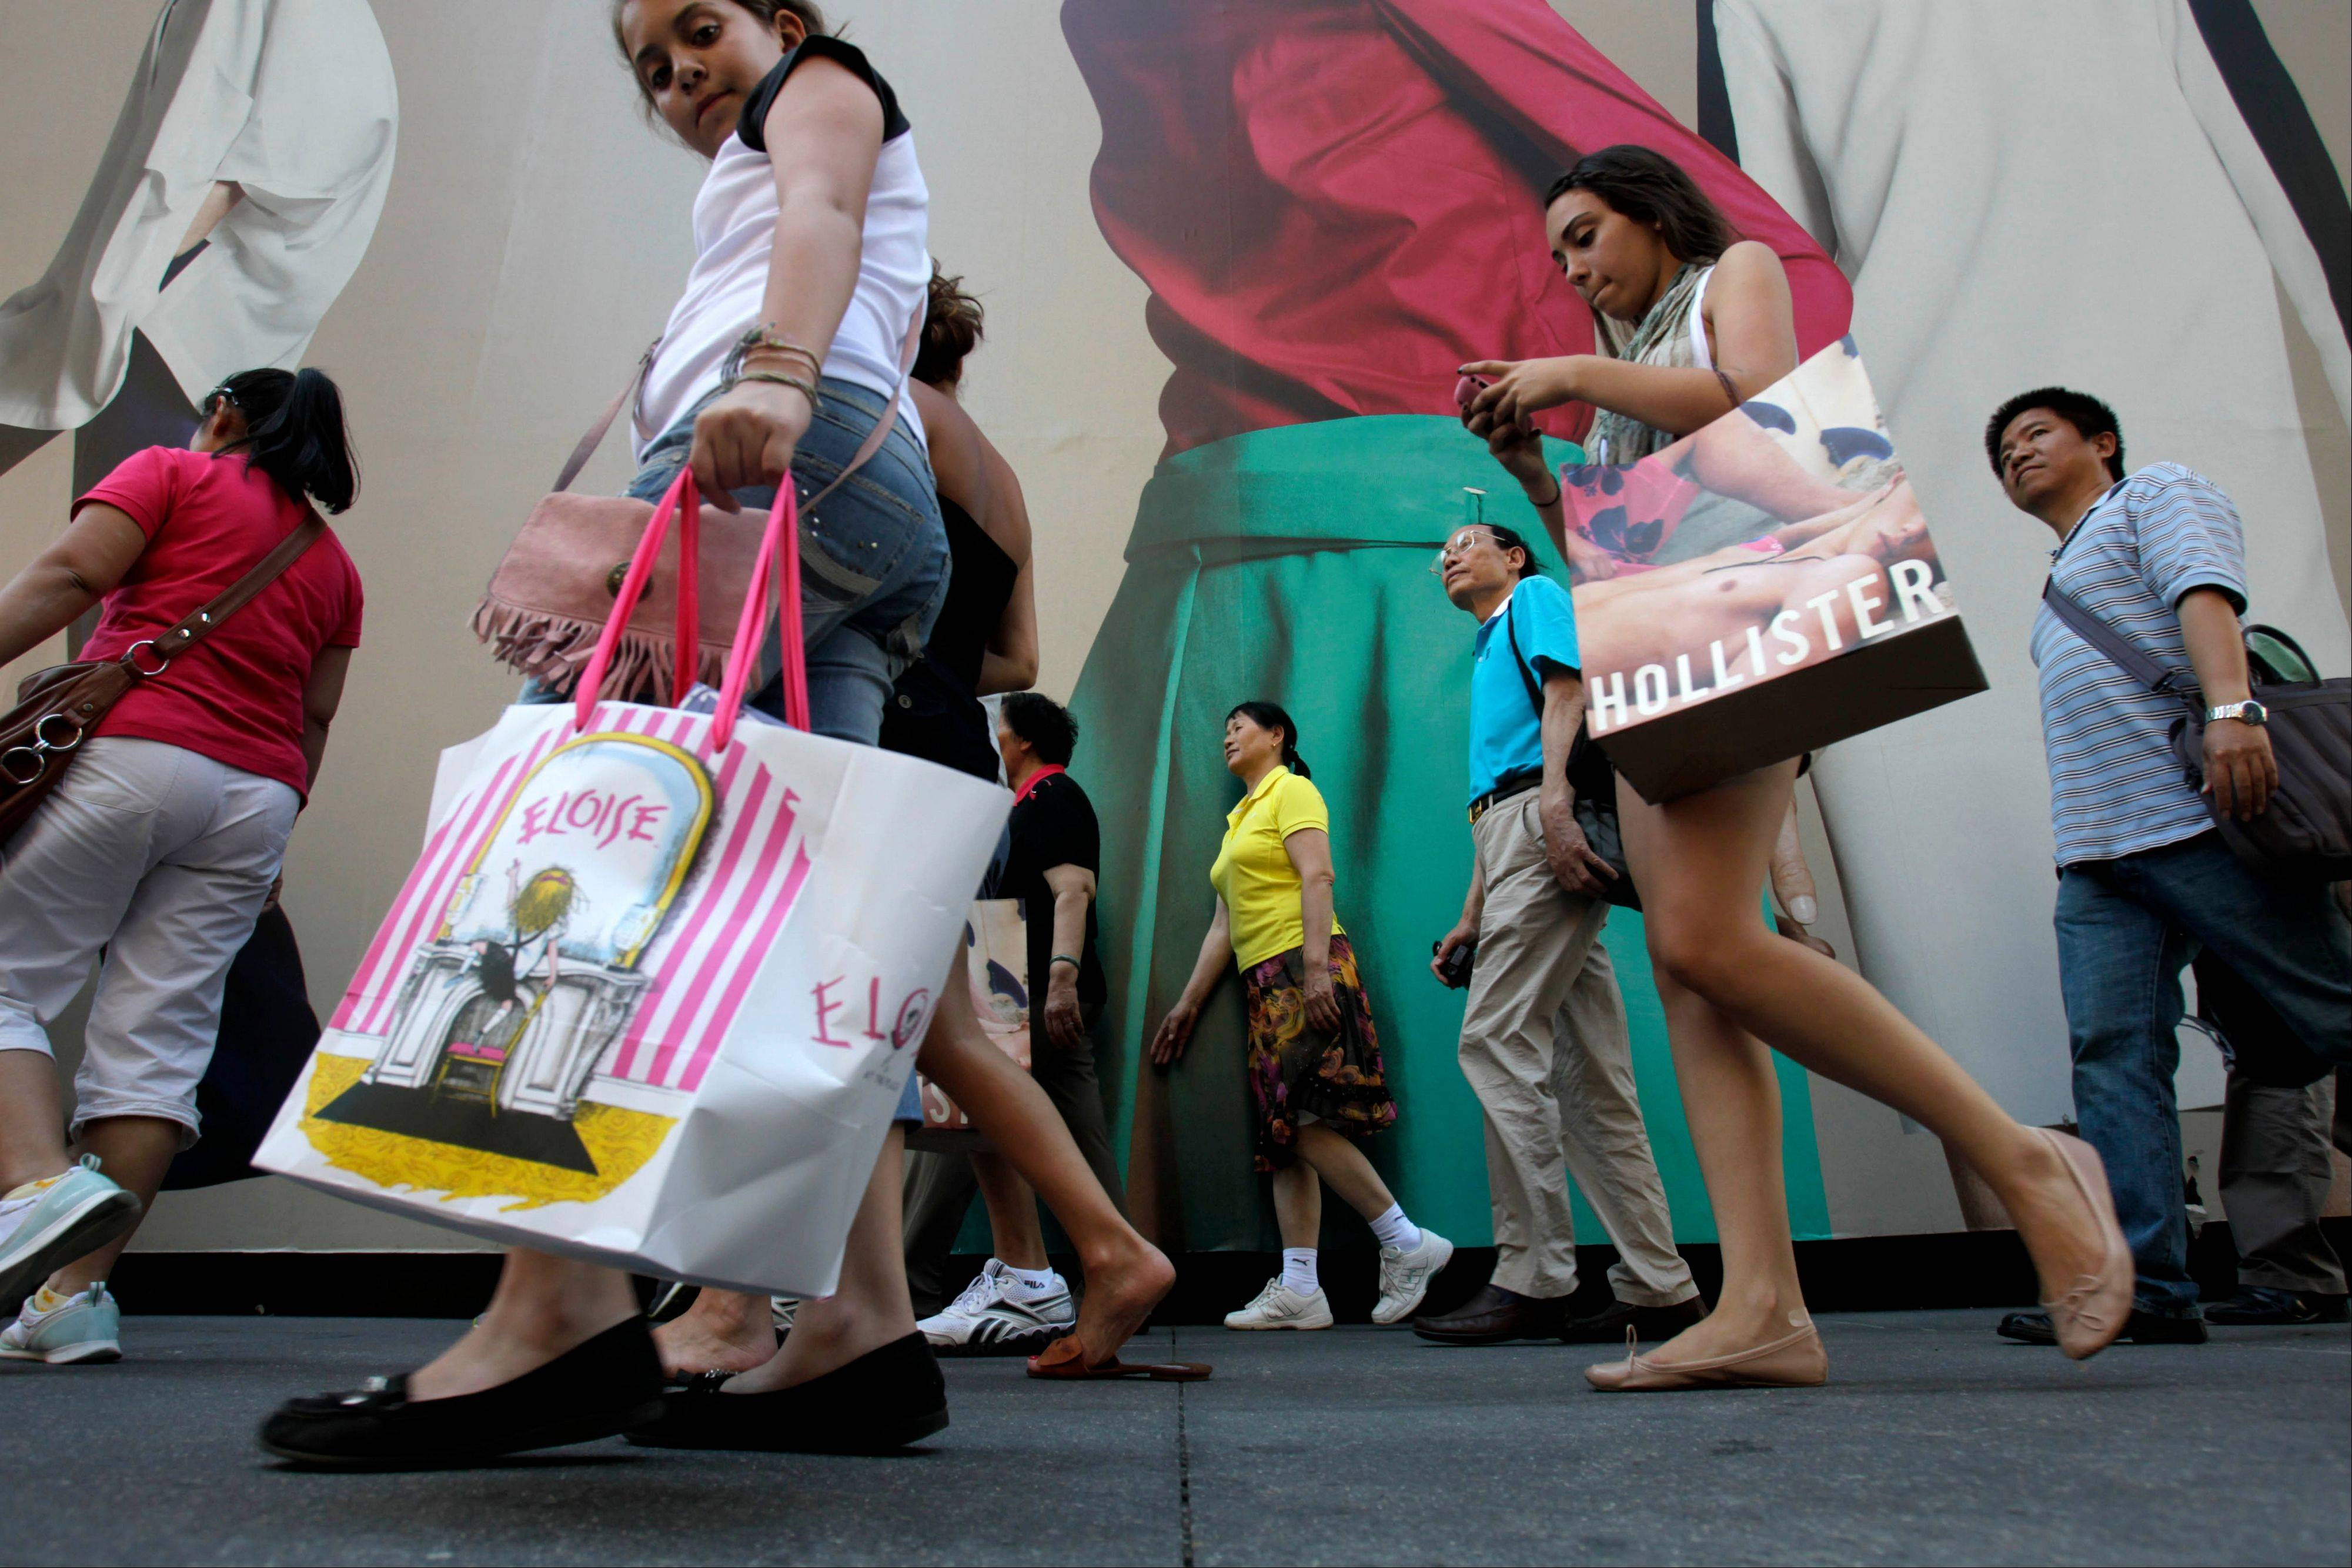 As the down economy batters both teens and their parents, teen clothing chains are having mixed success as they try to attract young people back into their stores by offering more of the things they love.